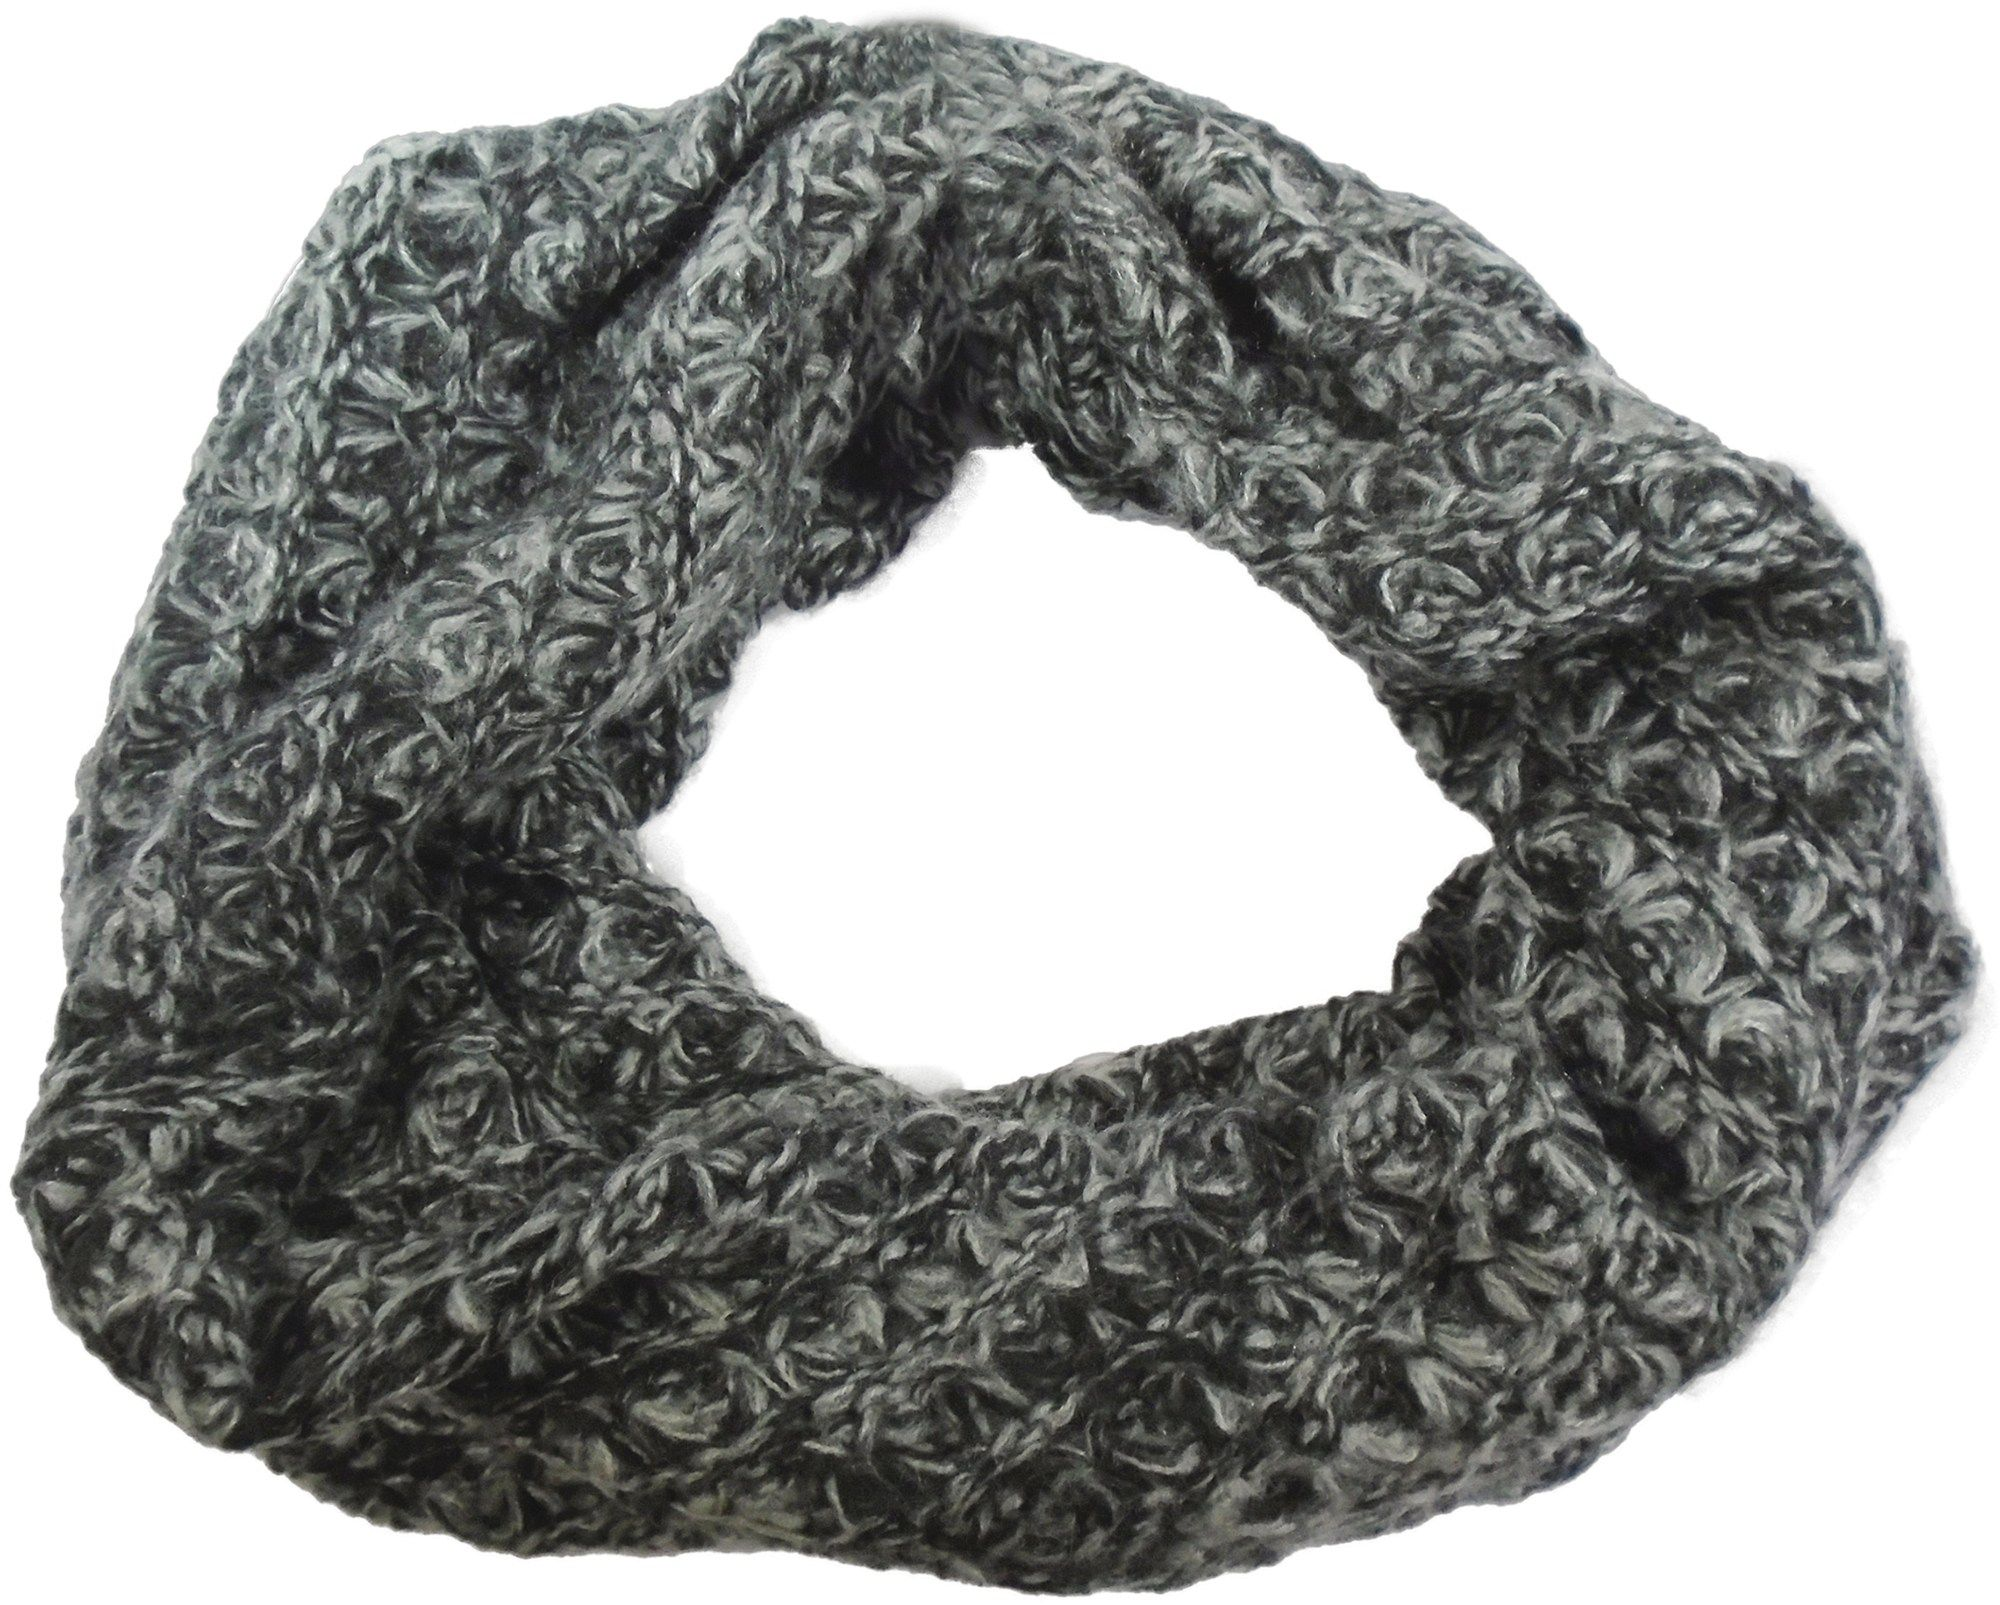 Chaos Female Textured Scarf - Women's